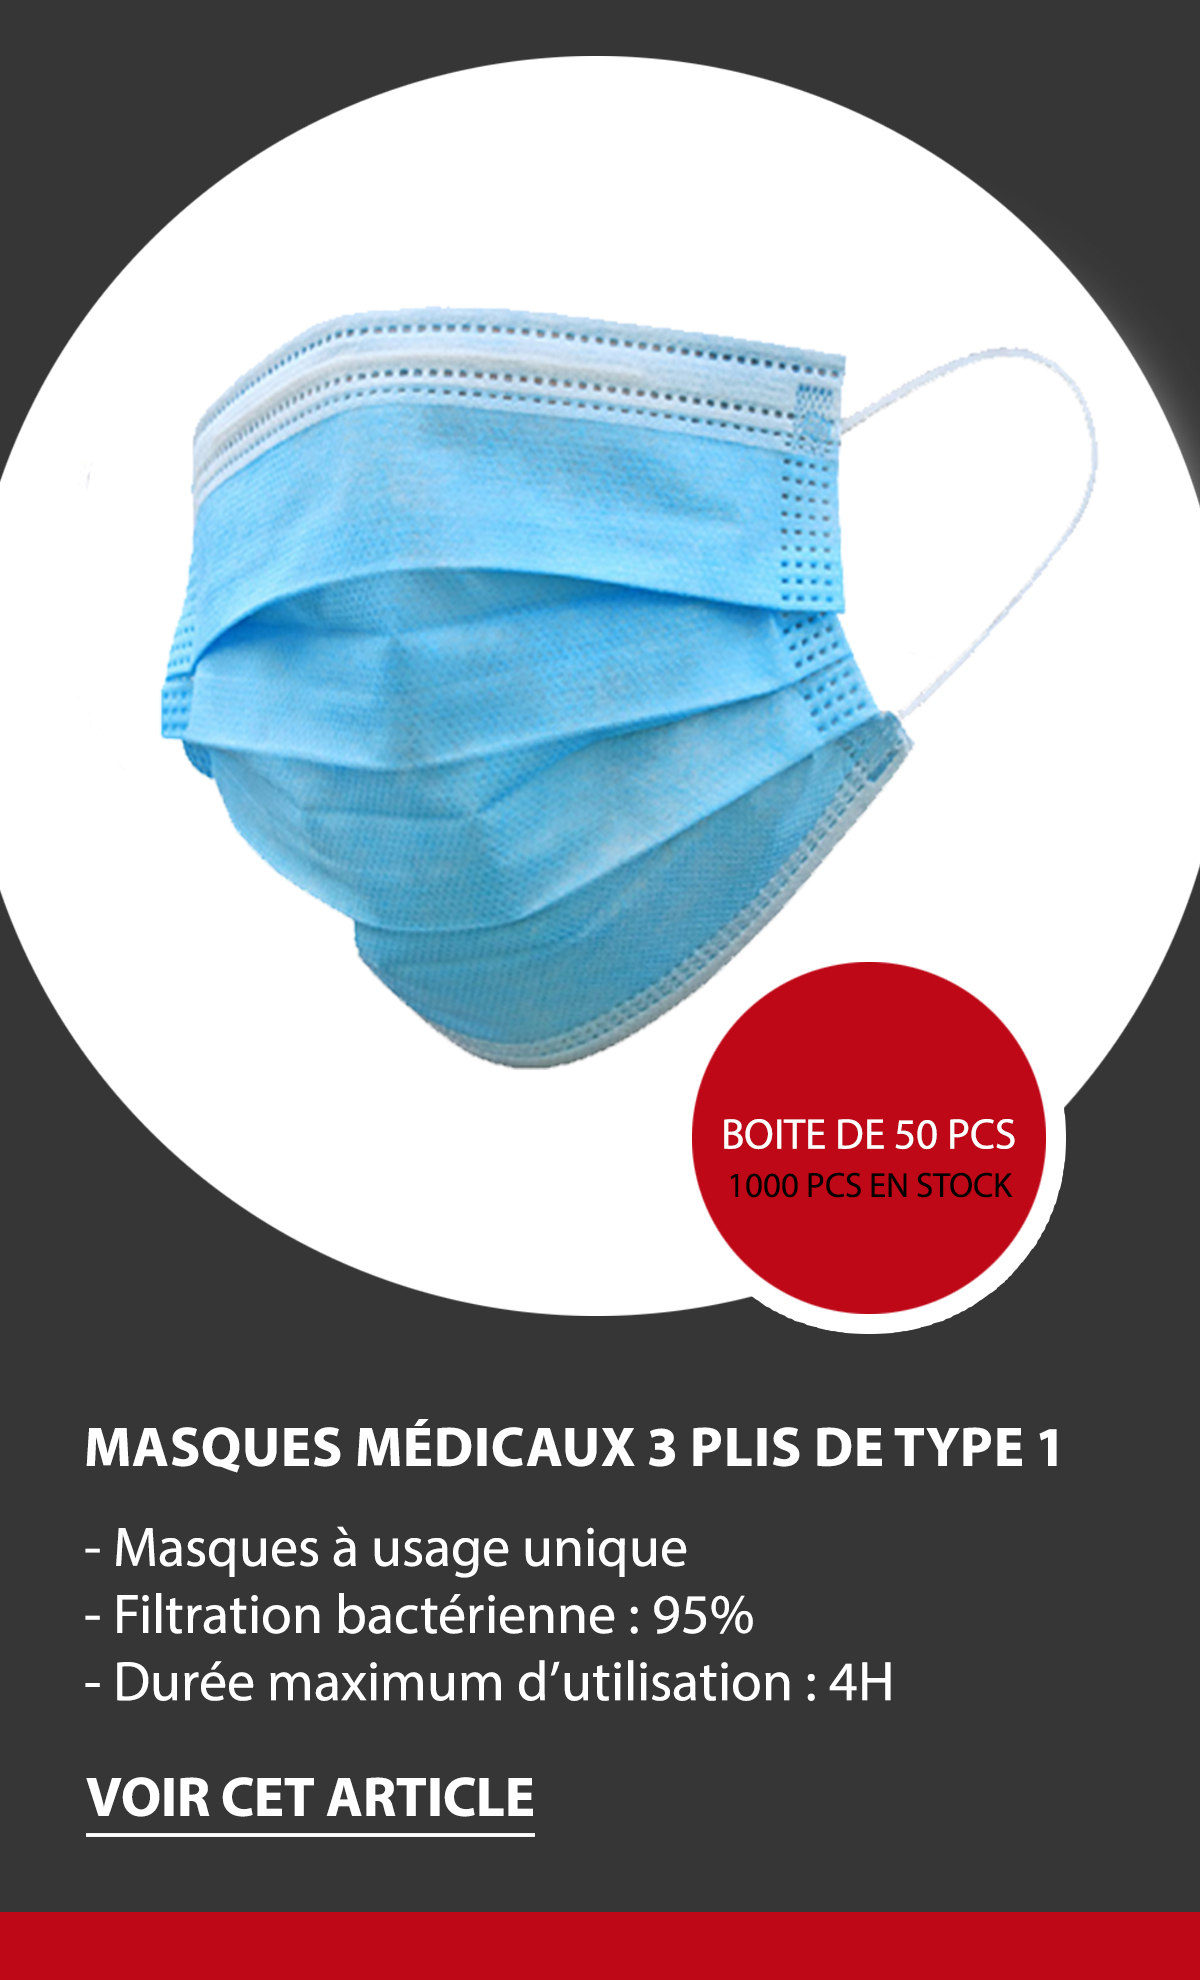 Masques médicaux de protection - Apie Logistic